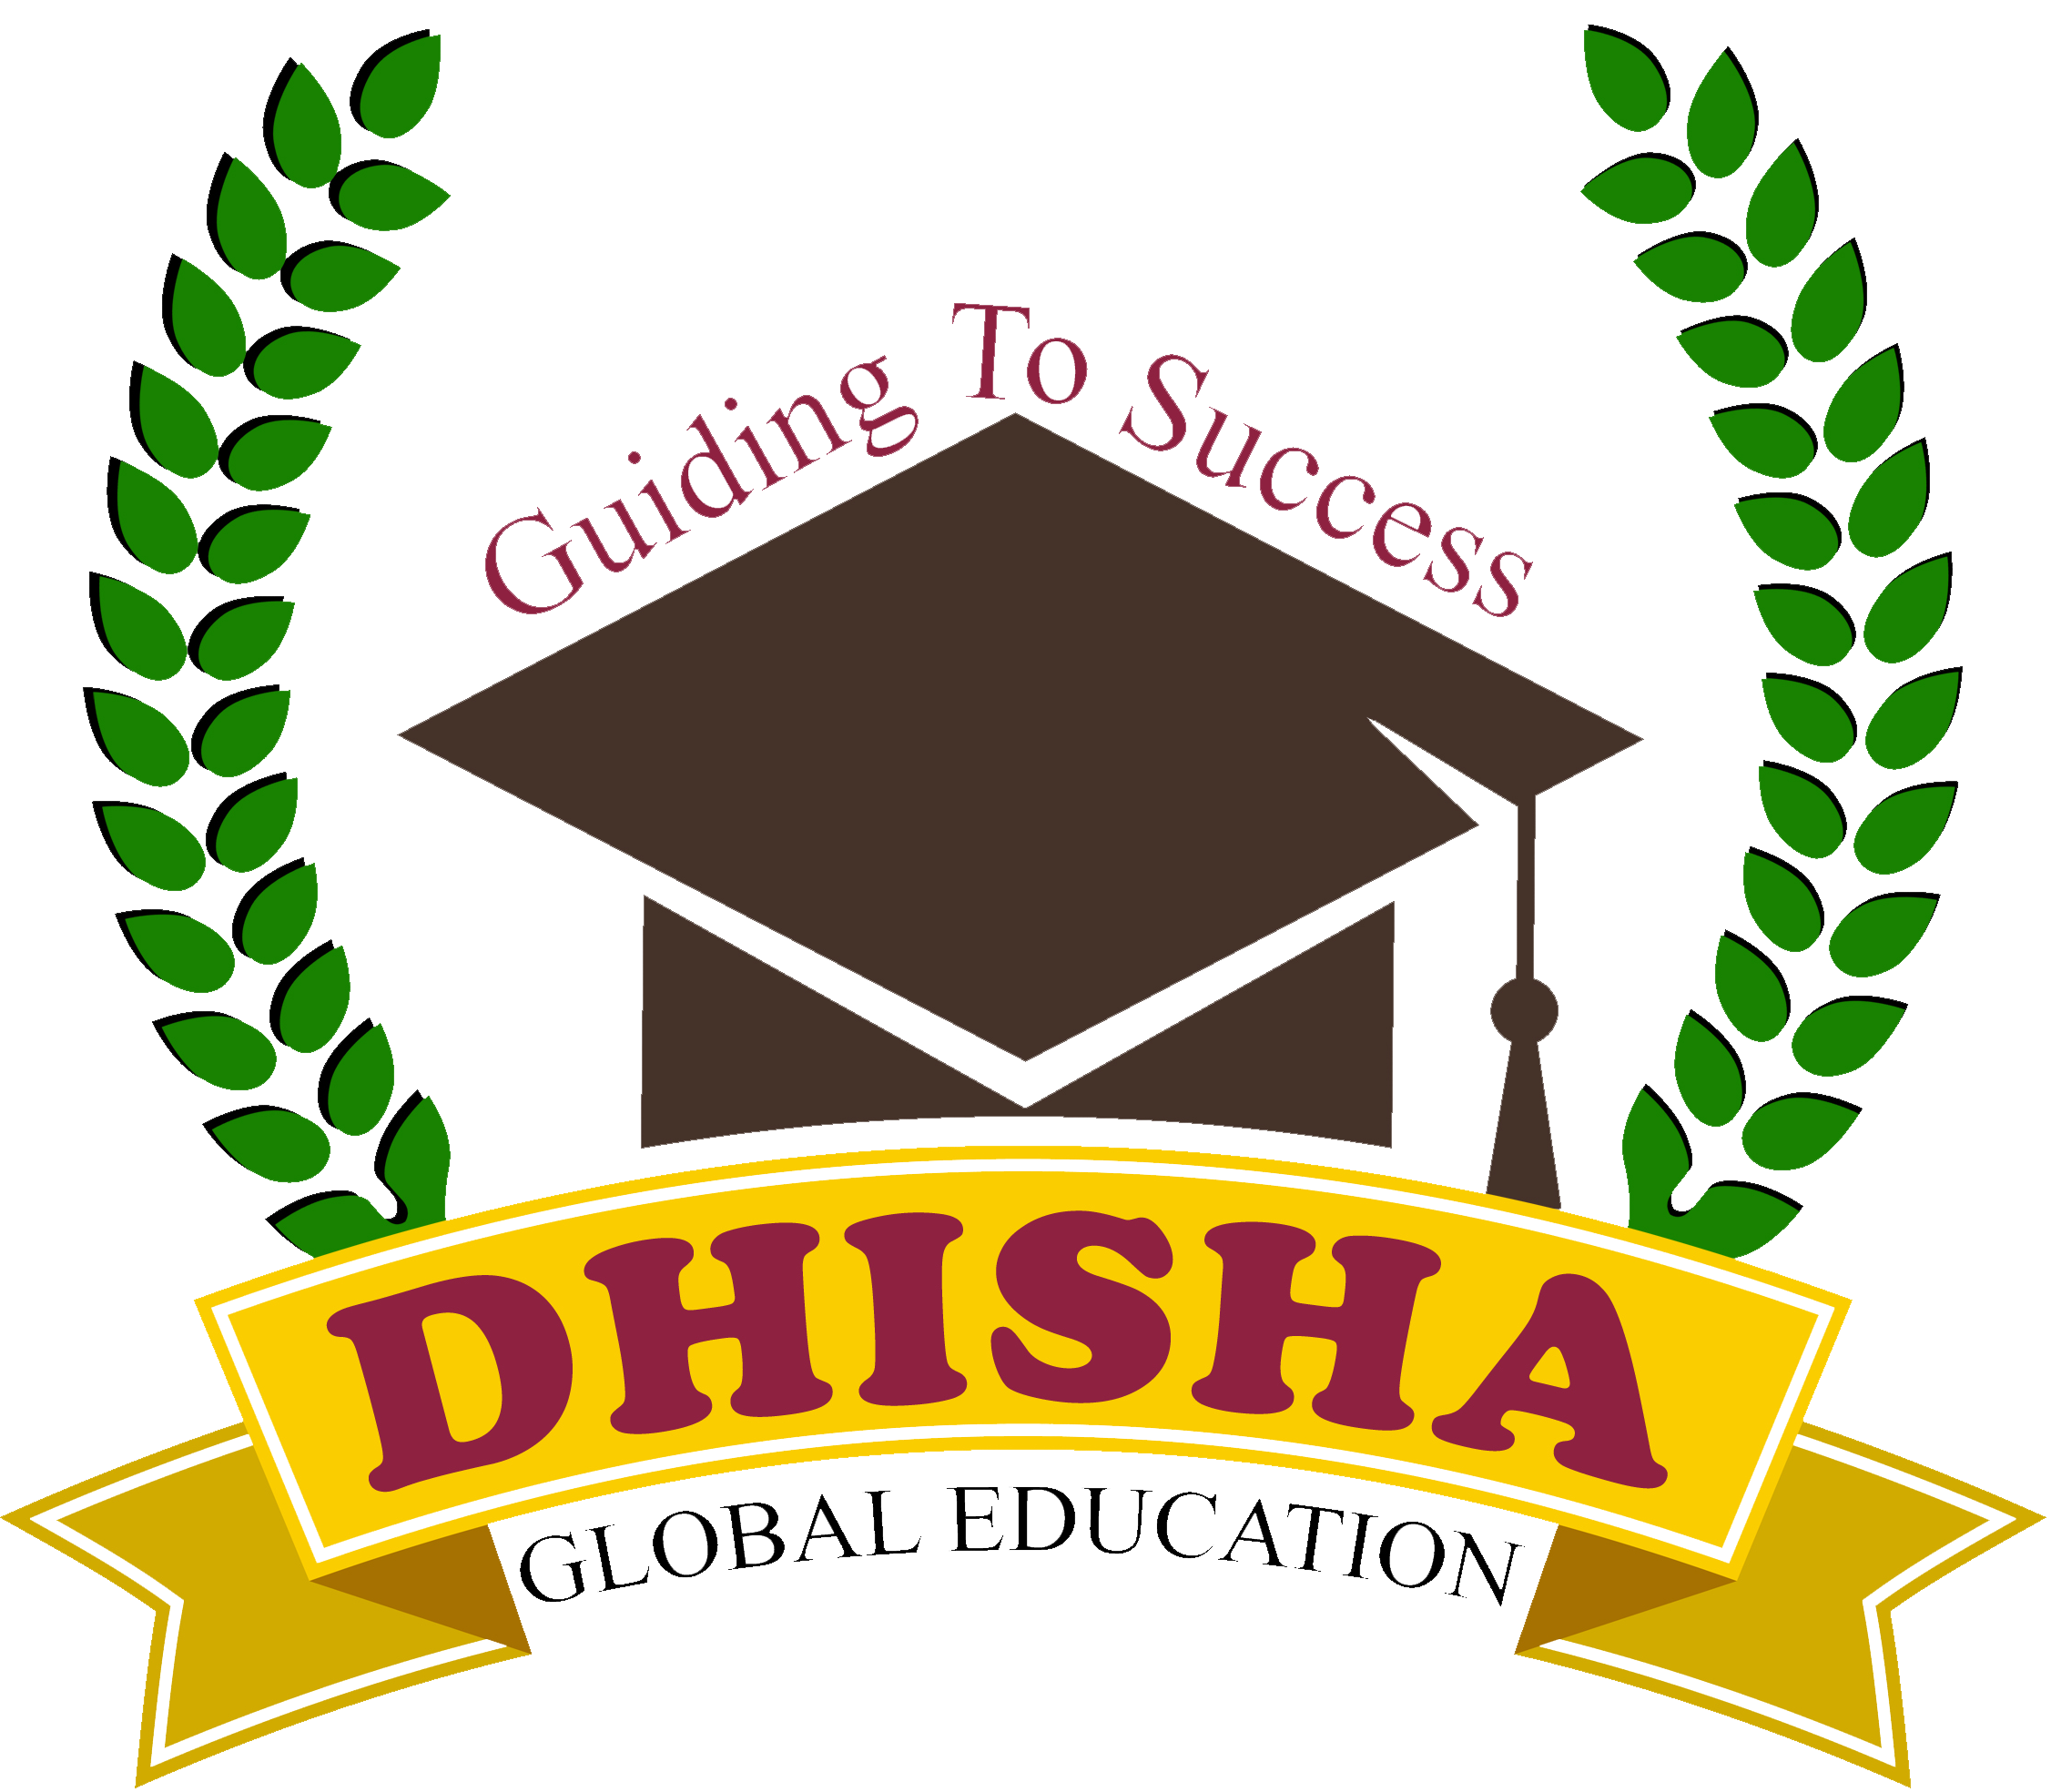 Missions clipart education global. Dhisha services